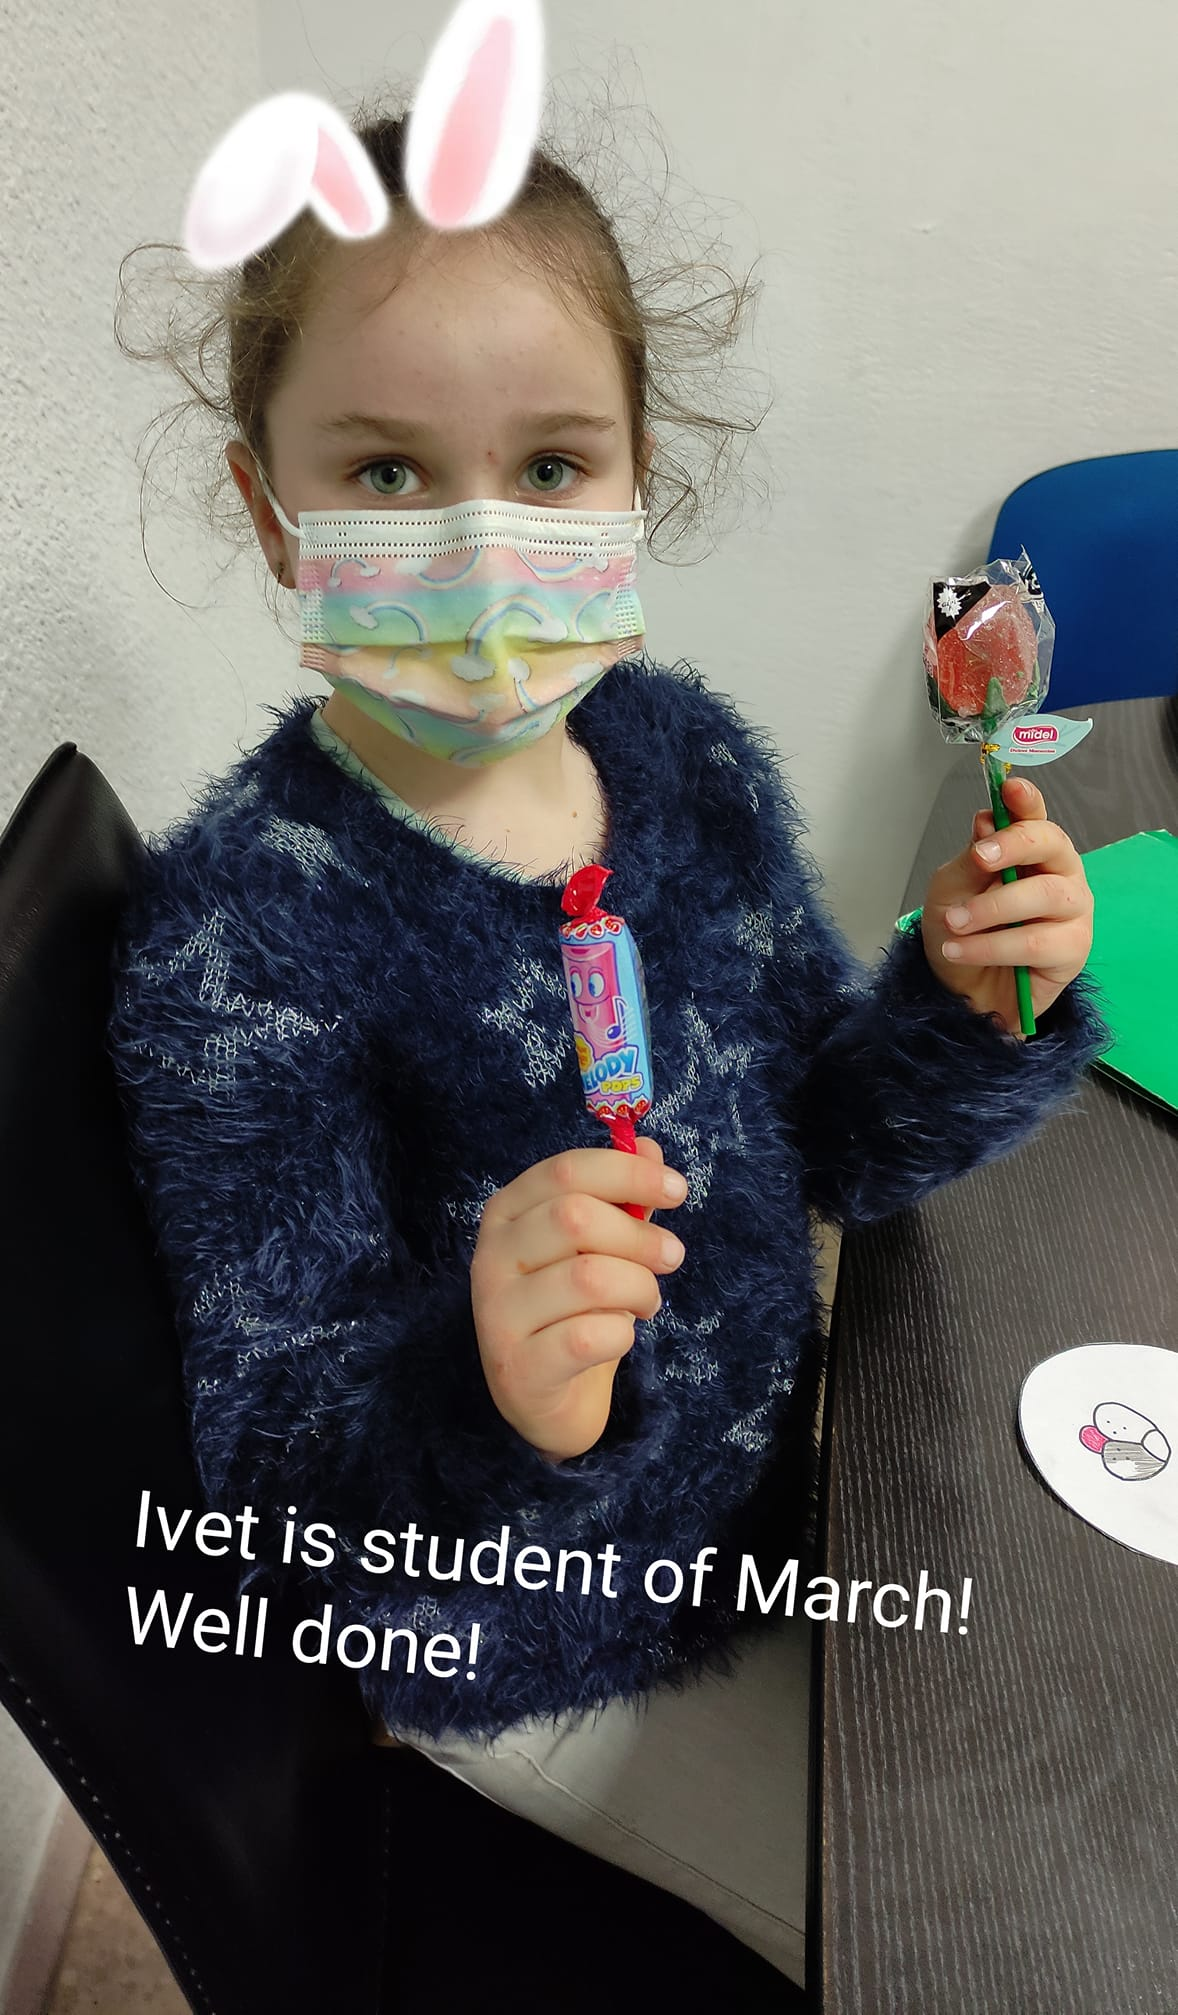 Ivet is the student of March! Well done.